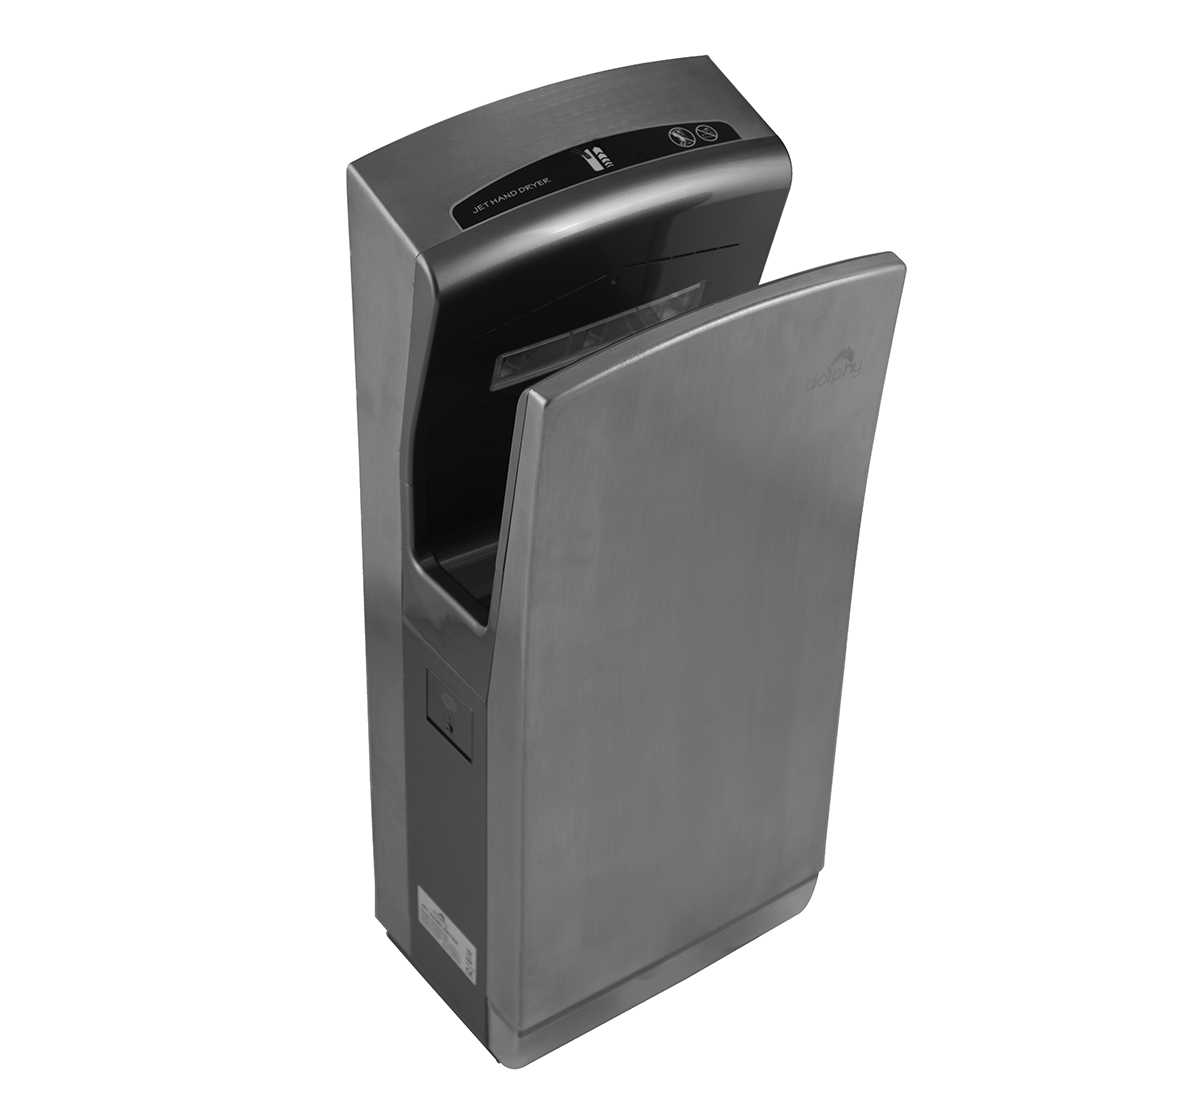 Stainless Steel Jet Hand Dryer